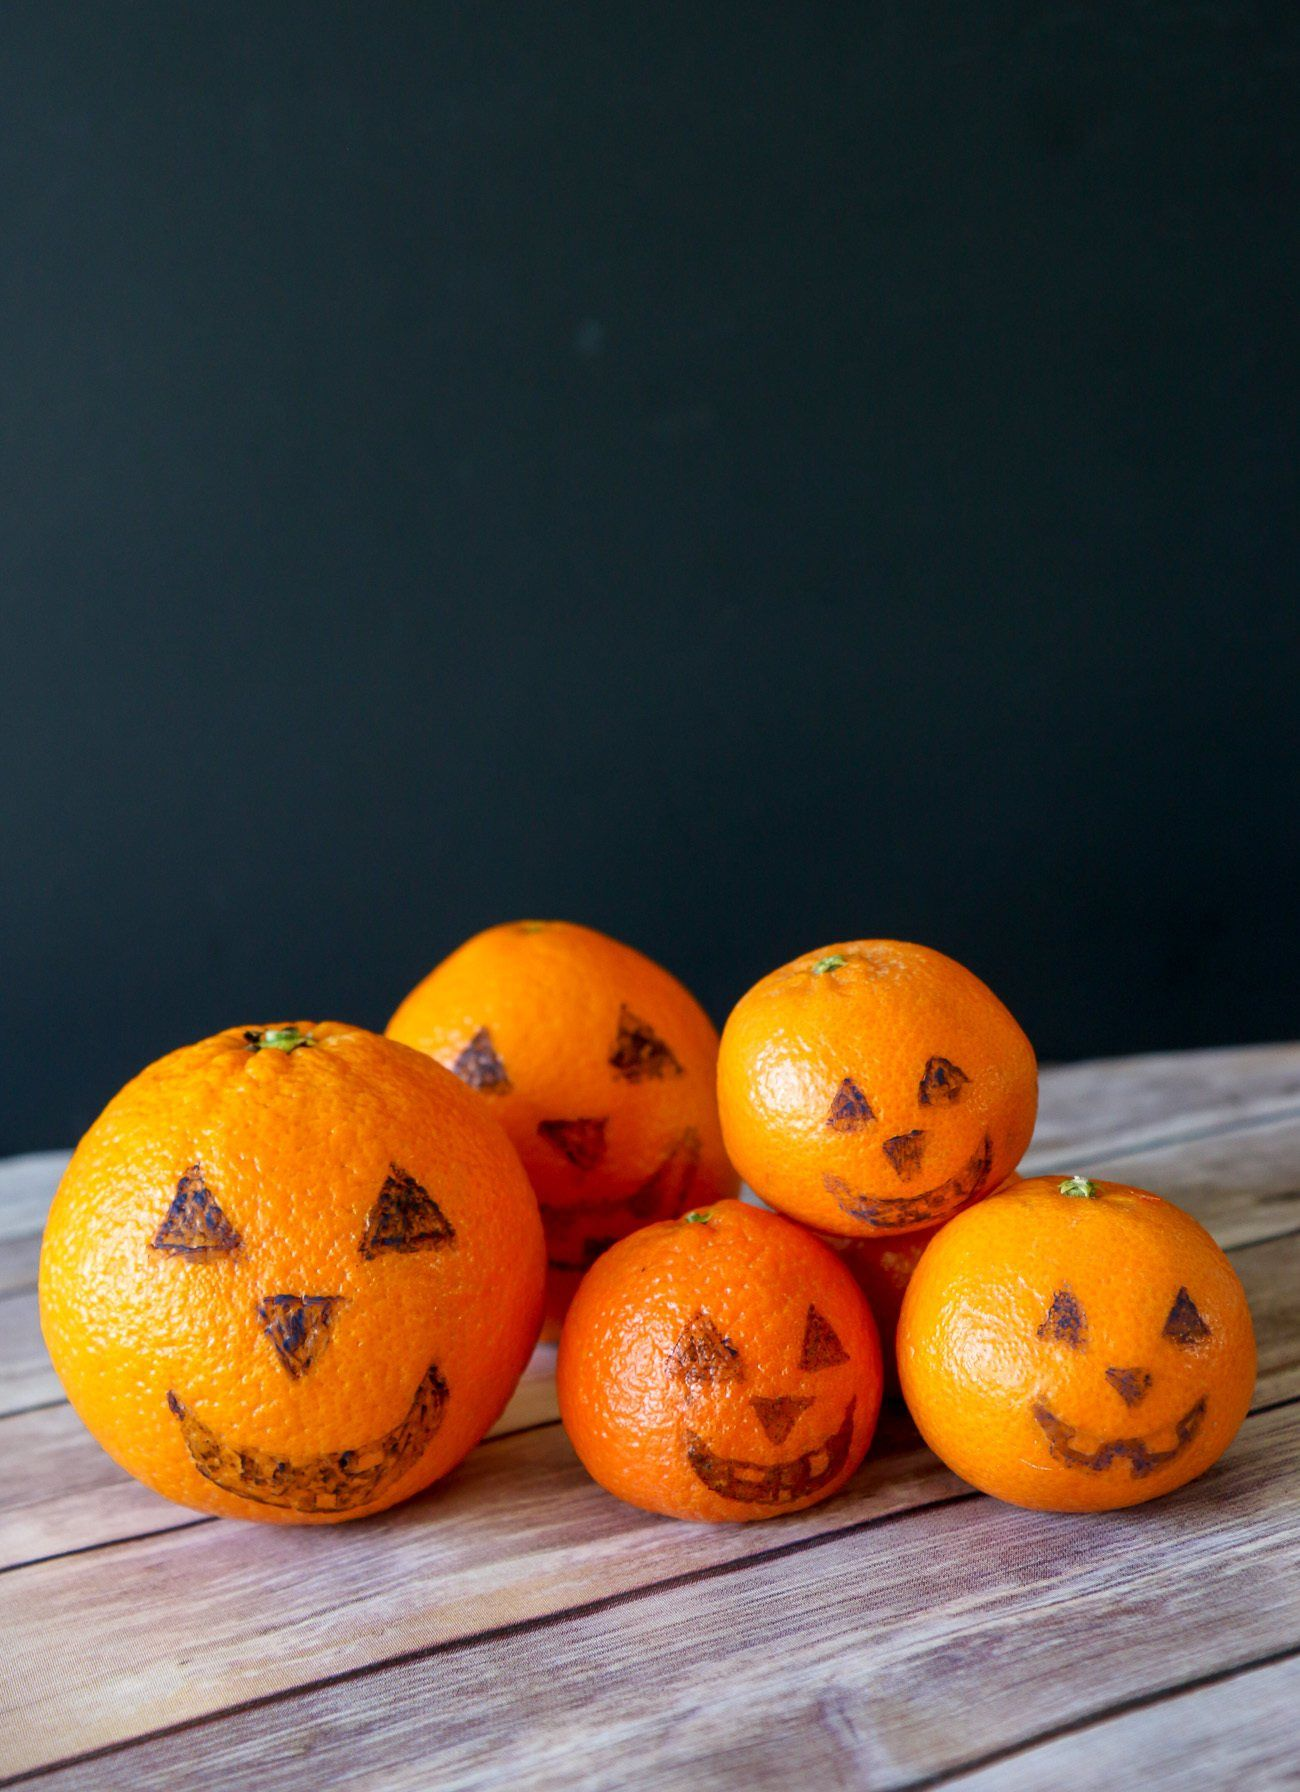 Draw jack-o-lanterns on oranges and tangerines with food safe markers for an easy Halloween snack.